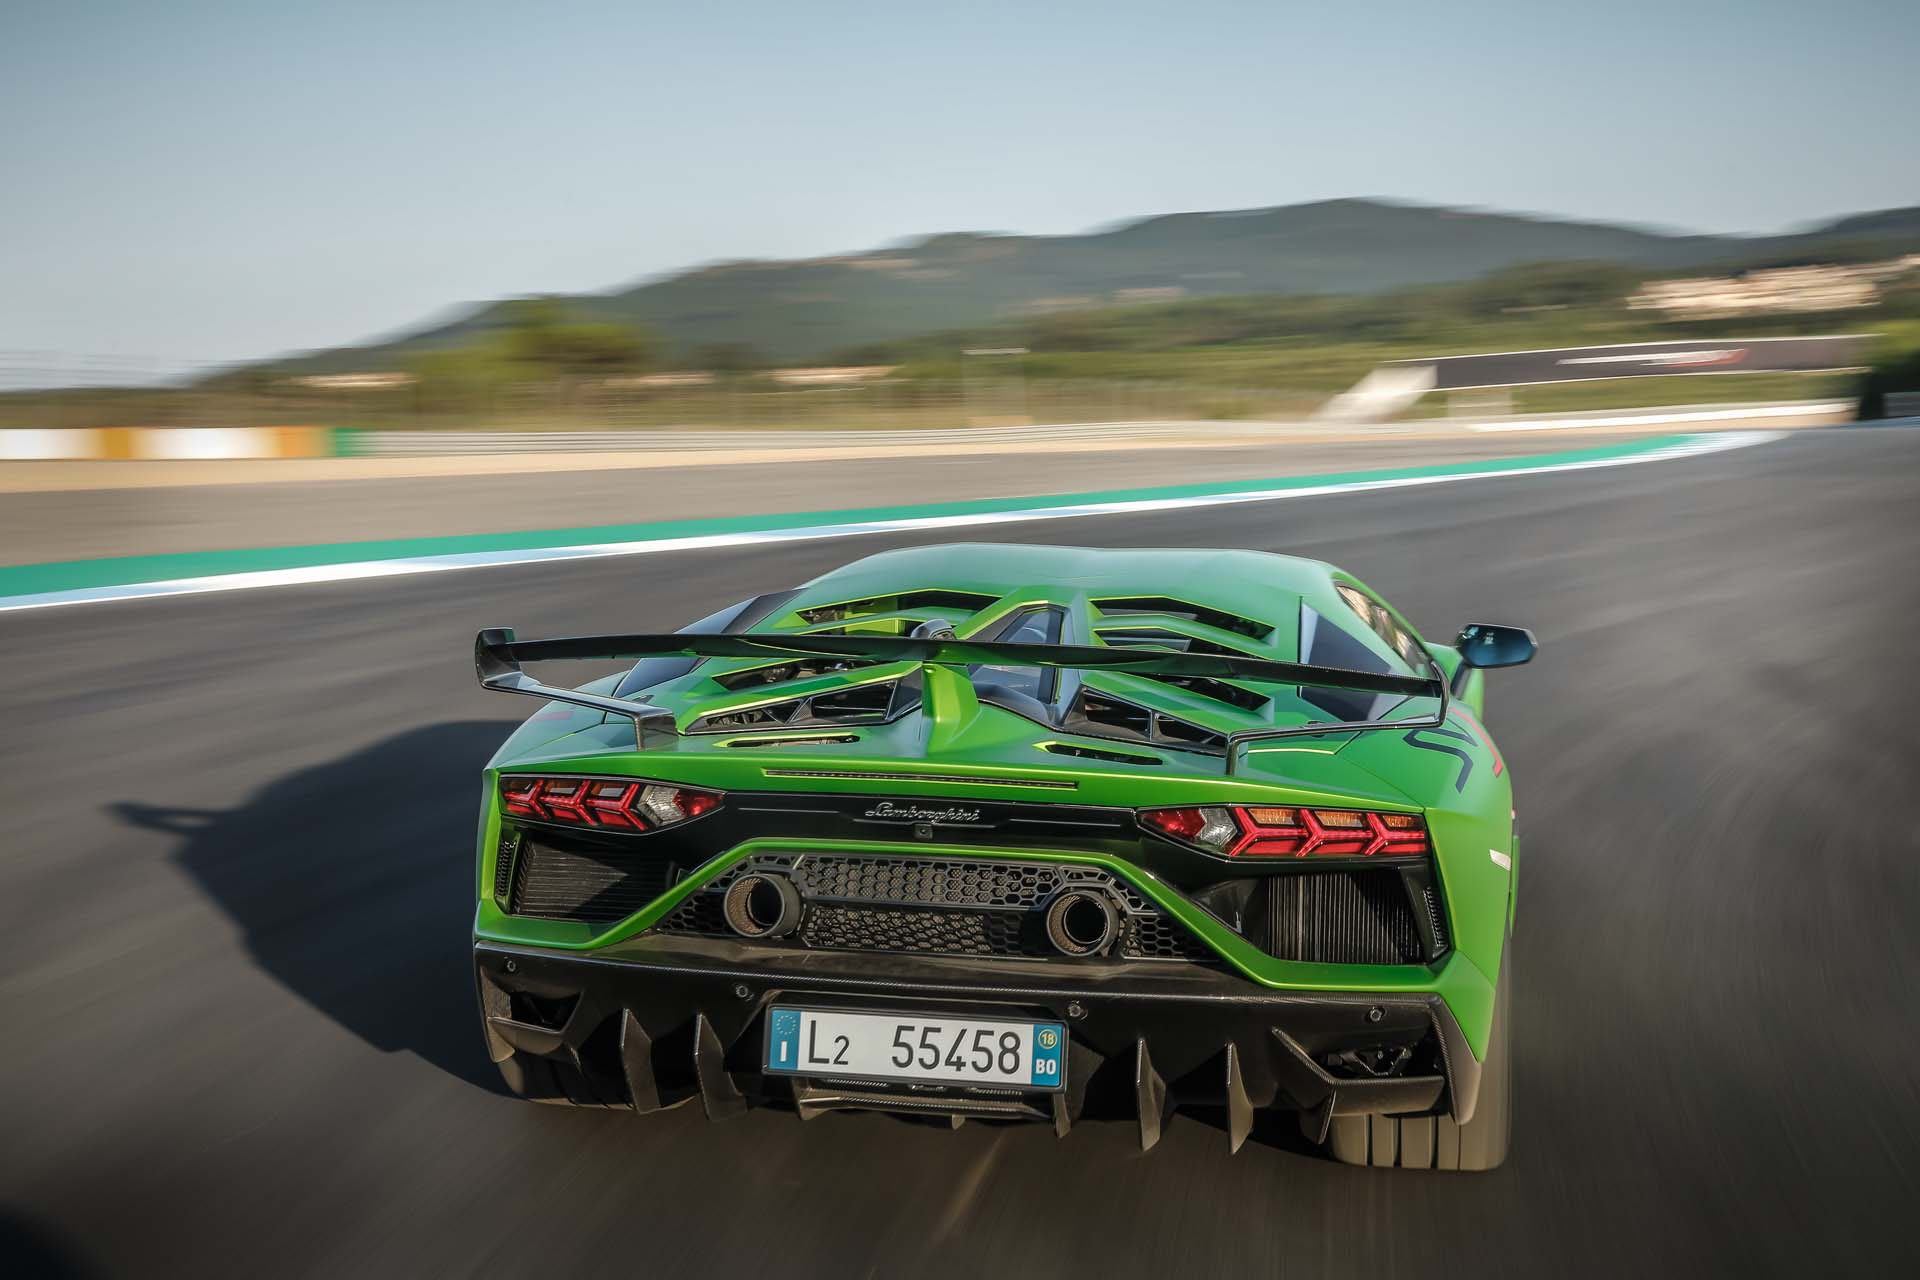 2019 Lamborghini Aventador SVJ Rear Wallpapers #19 of 241